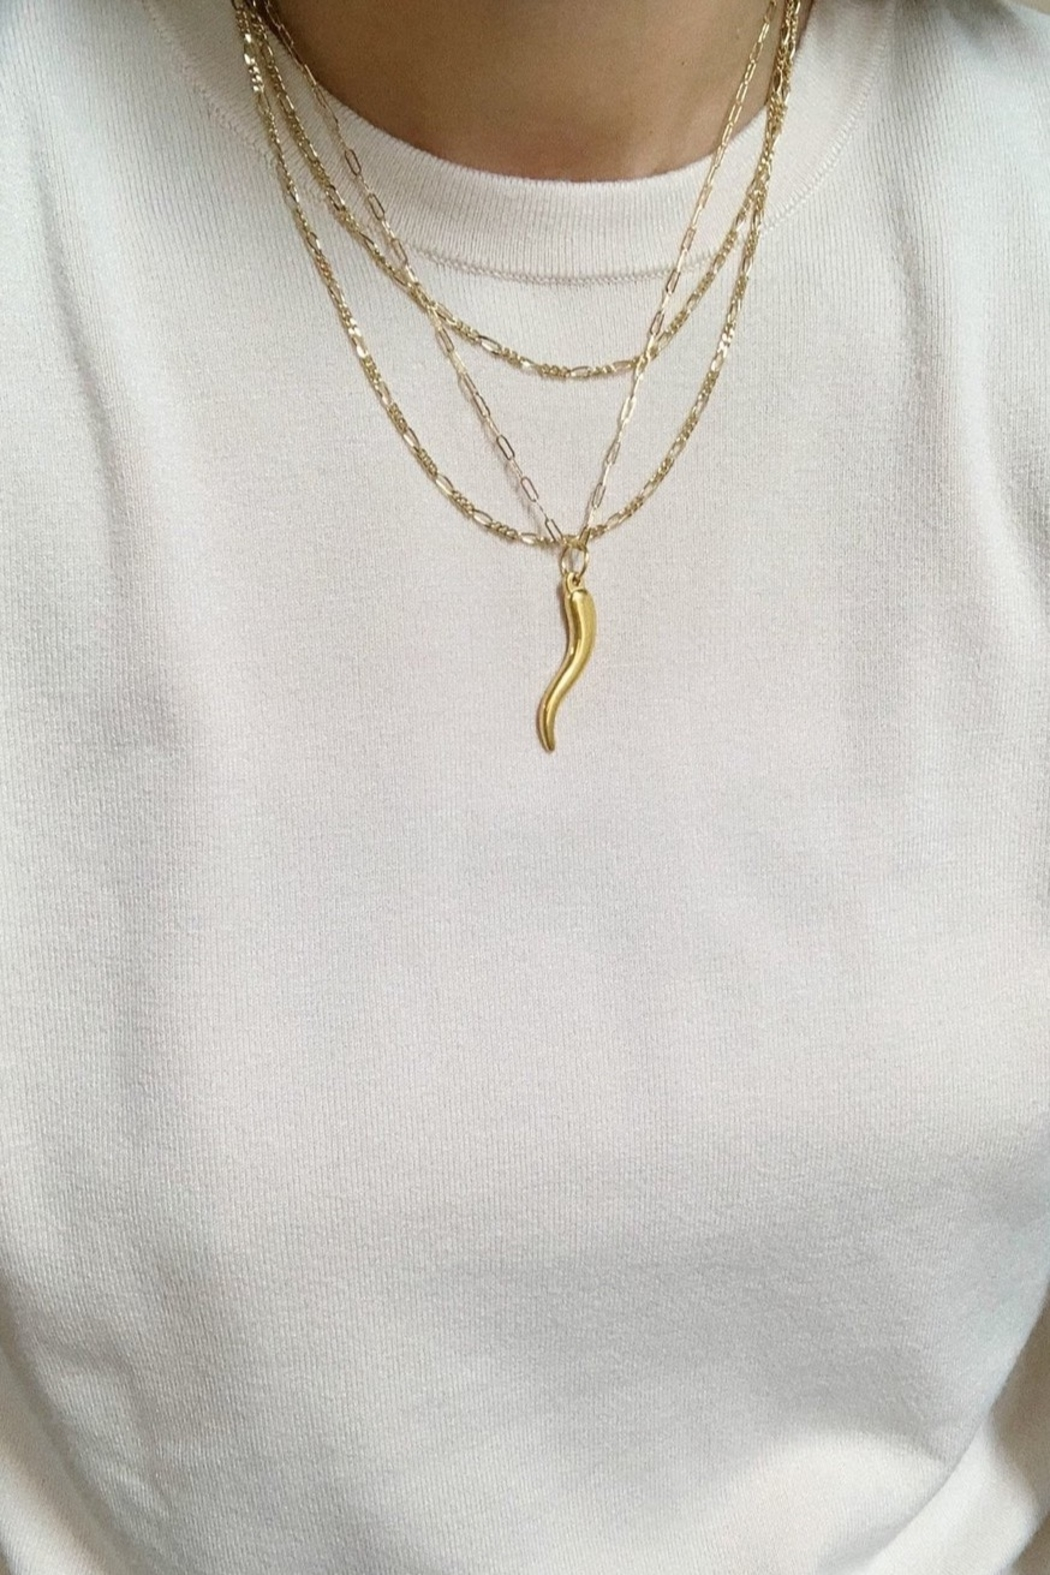 CRIV Dainty Italian Horn Necklace - Front Full Image